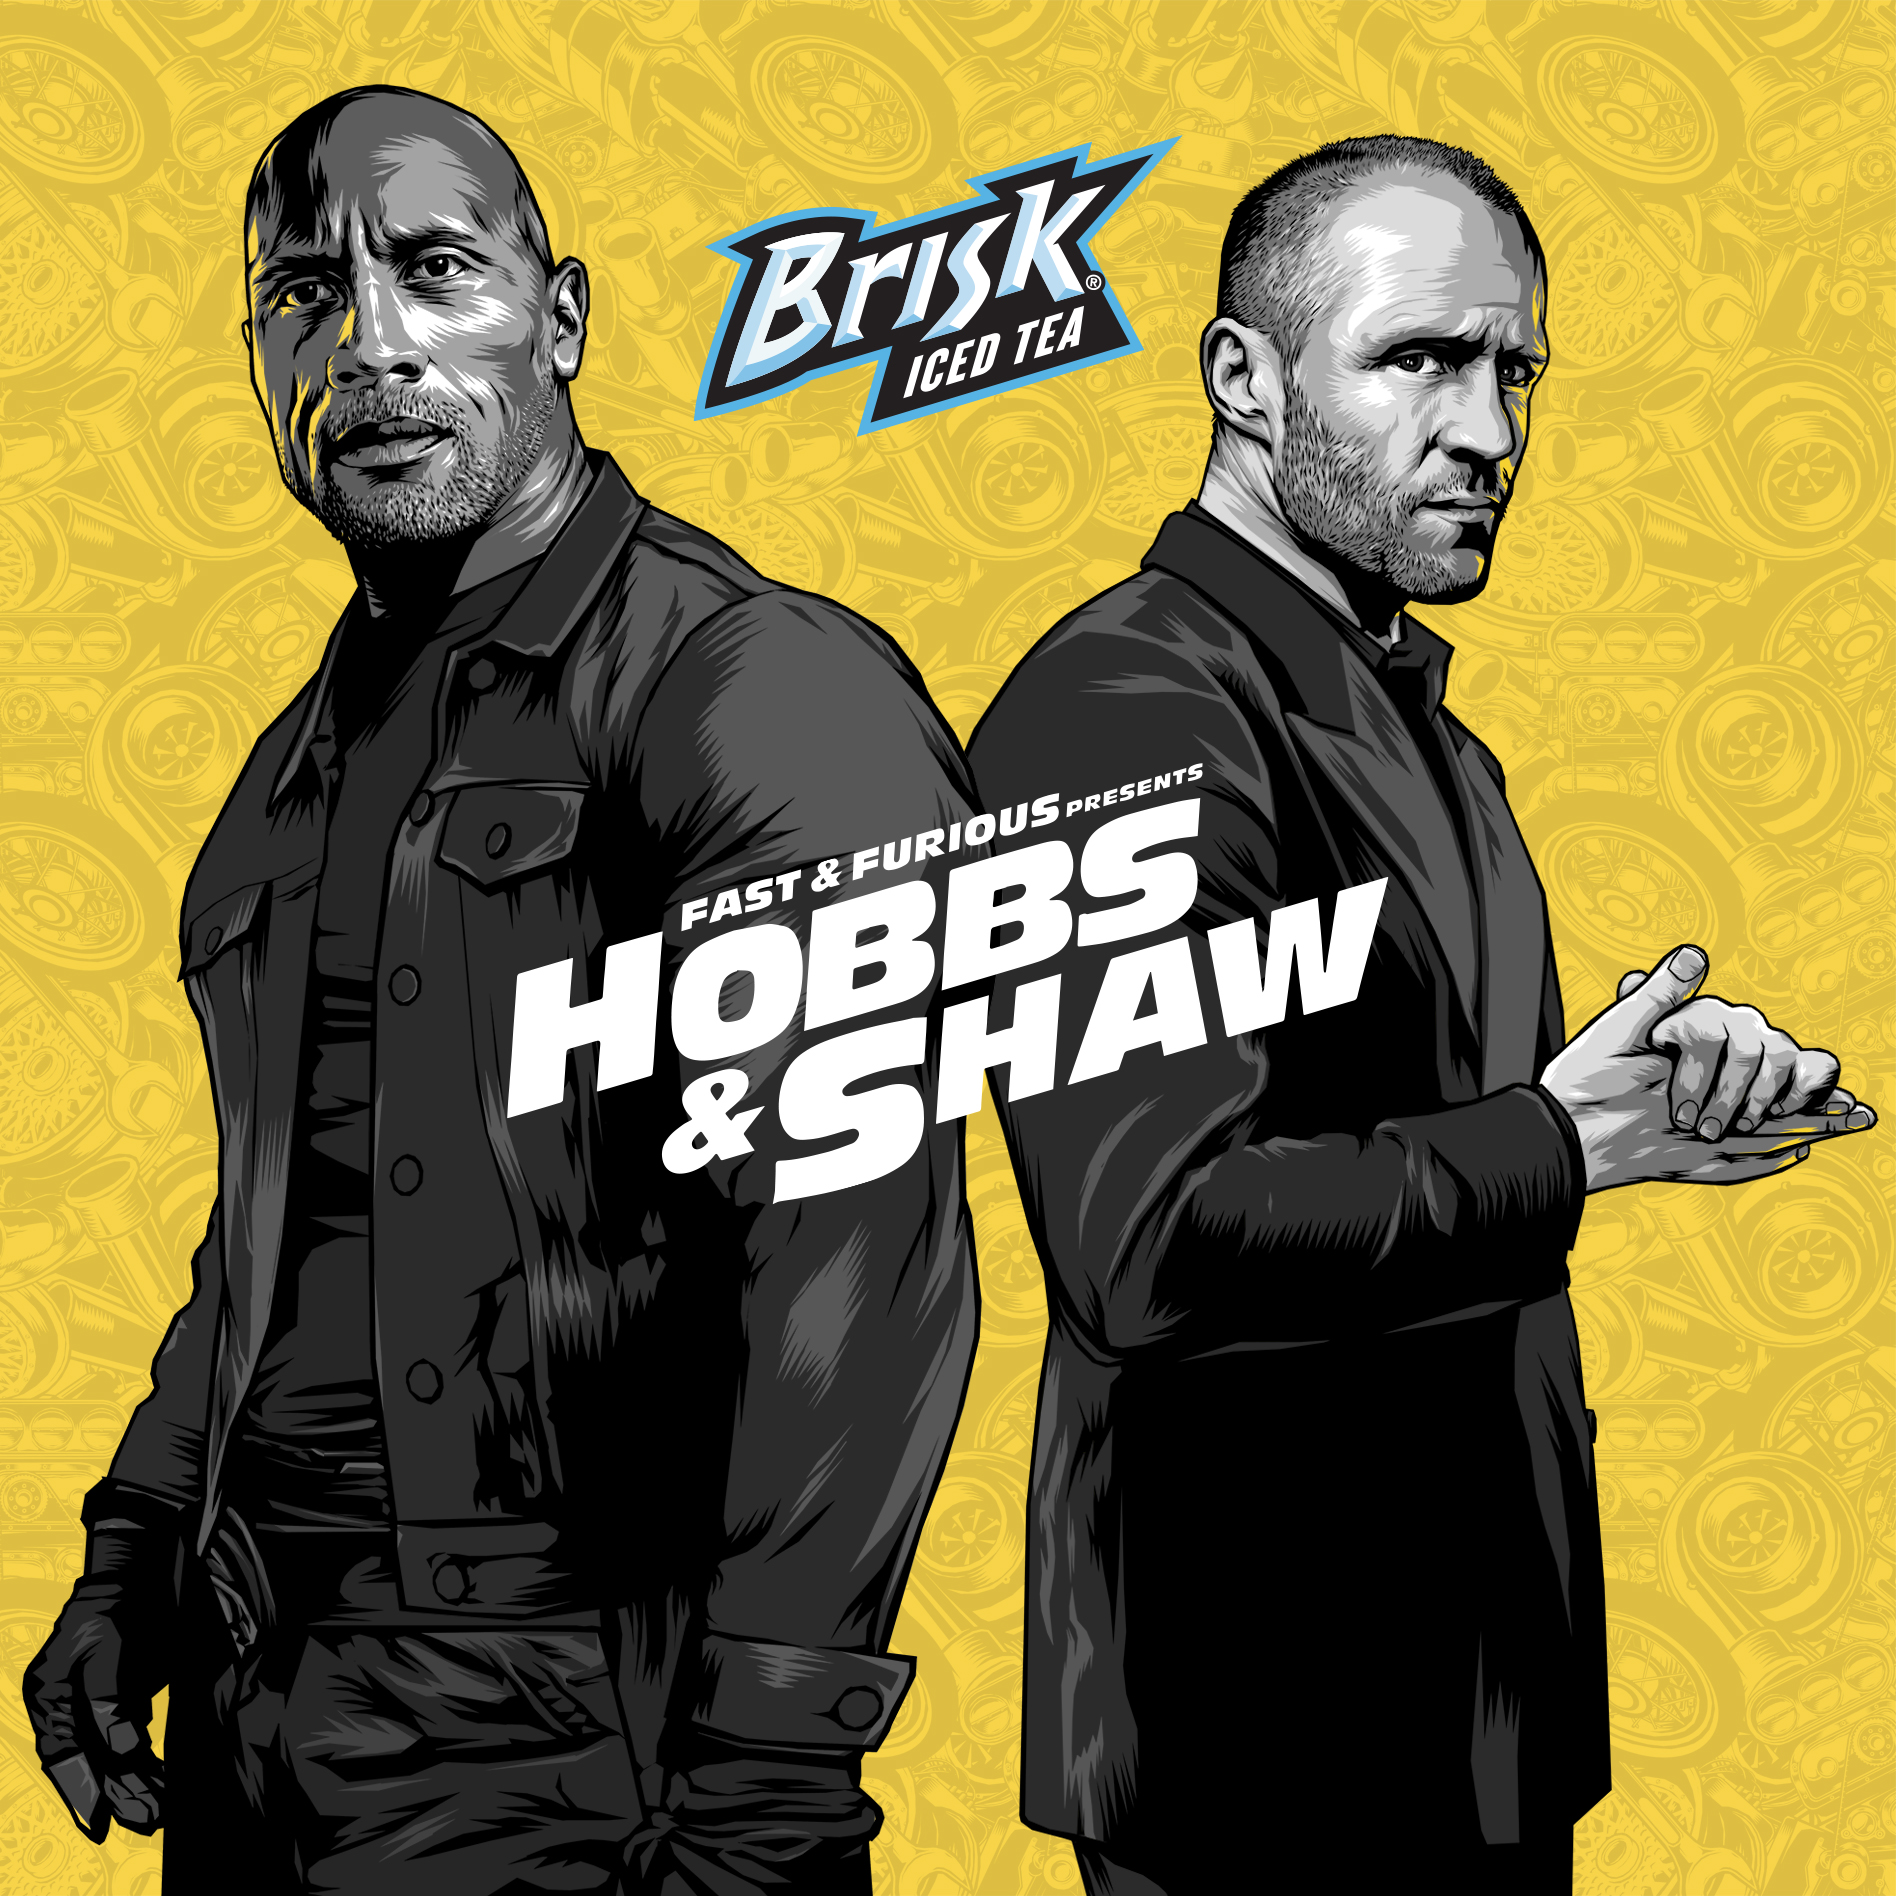 Hobbs and Shaw for Brisk Iced Tea